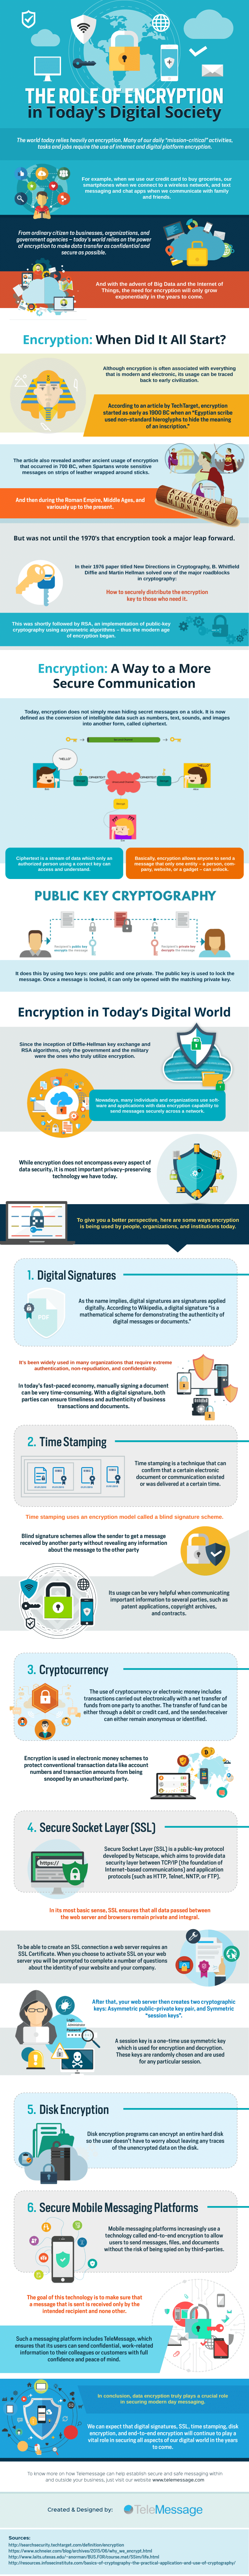 Encryption in Digital society Infographic